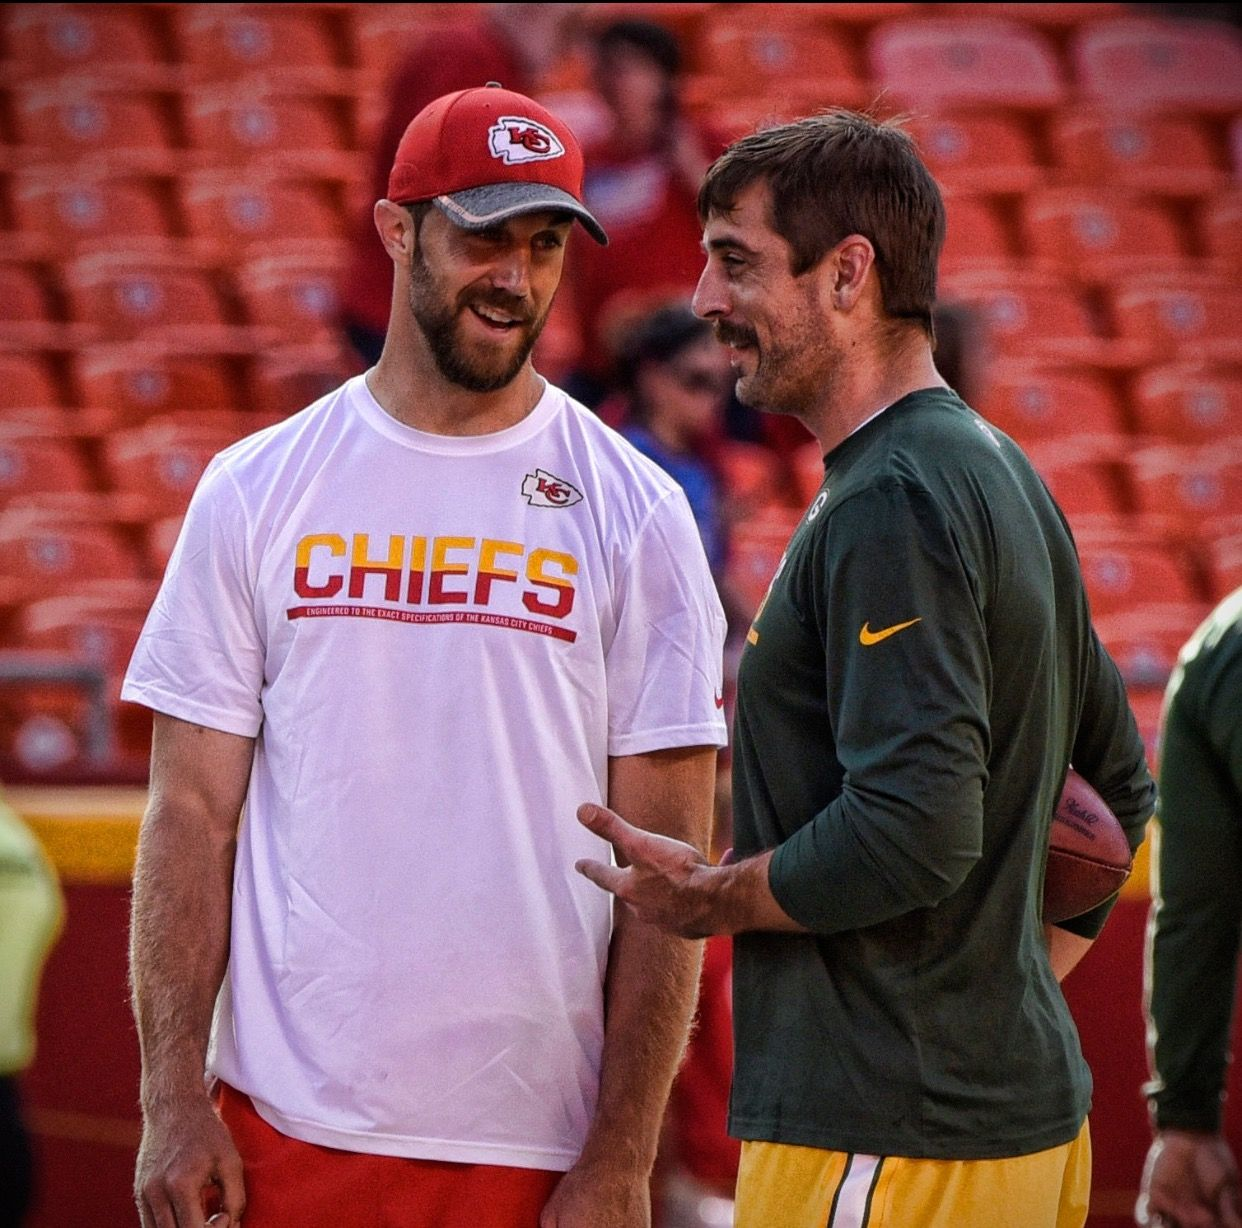 Alex Smith And Aaron Rodgers Same Draft Class Of 2005 Alex Smith Nfl Nfl Football Players Alex Smith Chiefs